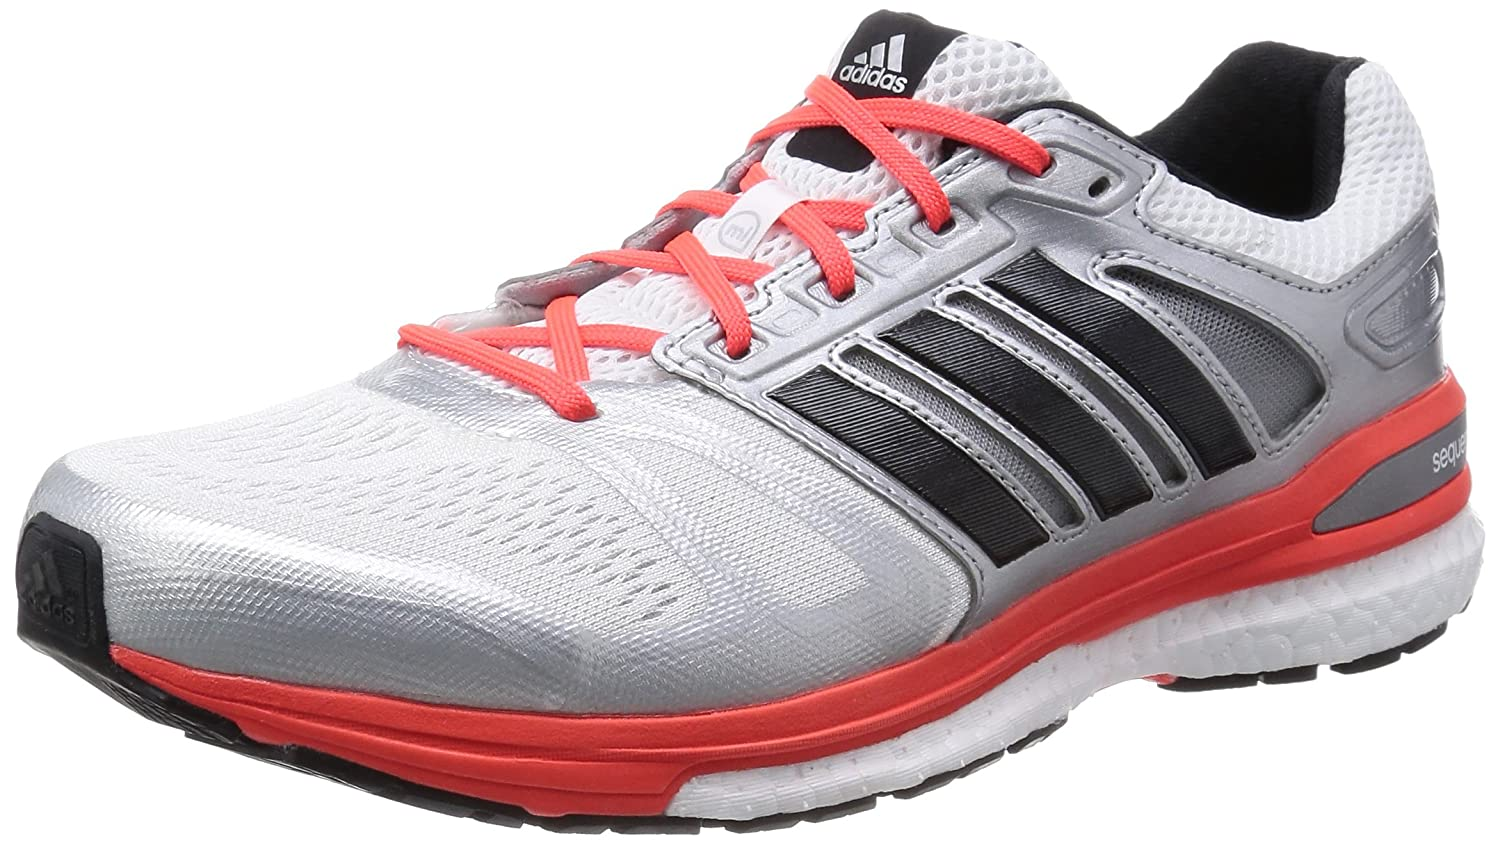 43366be988758 adidas Supernova Sequence Boost, Men's Running Shoes